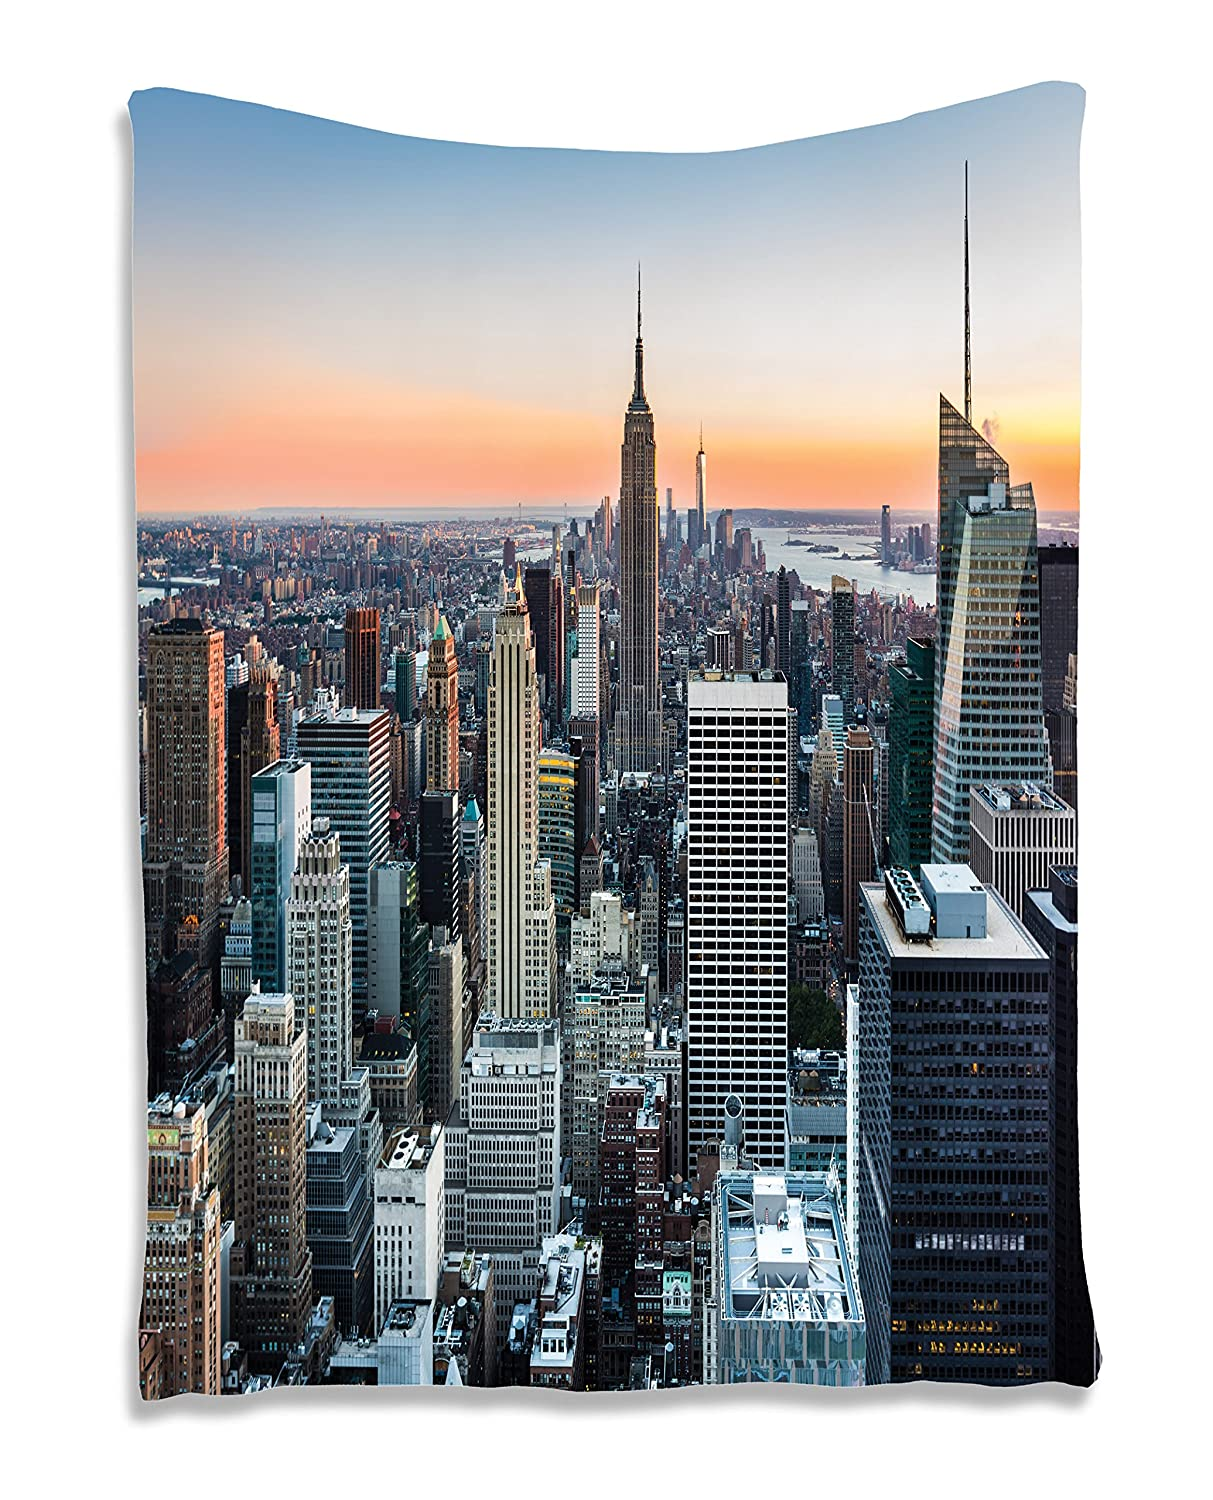 Wall Art Tapestry Decor New York City Themed Picture Rose Quartz Manhattan  Skyline Sunset Lighted Fabric Room Divider Panel Landscape Photography Wall  ...